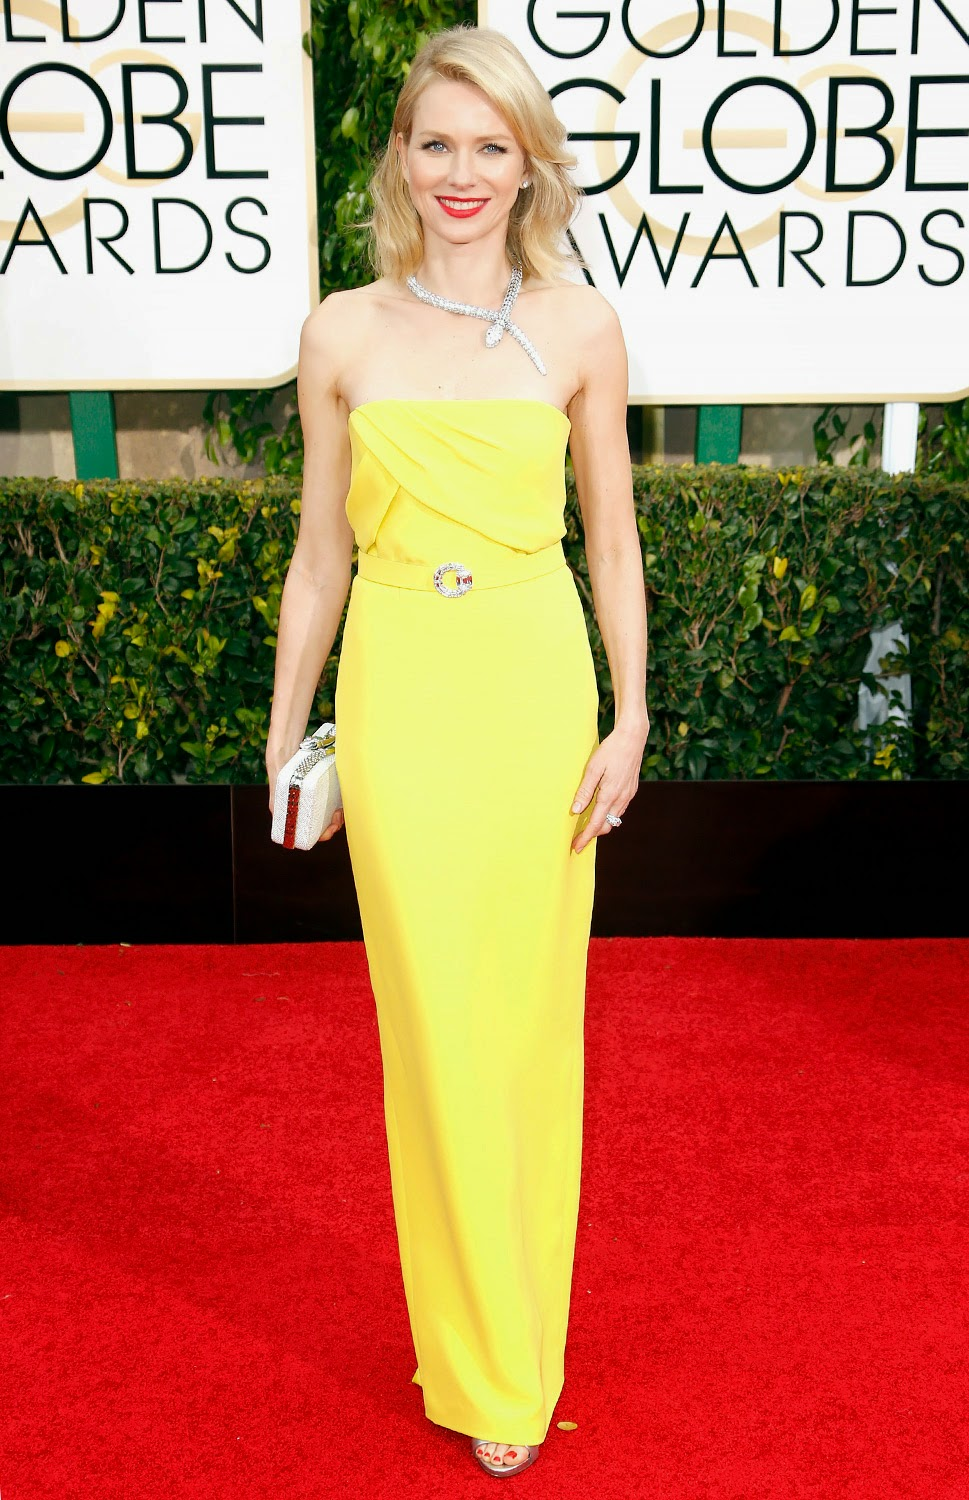 Naomi Watts sparkled in sunshine yellow Gucci gown at the 2015 Golden Globes